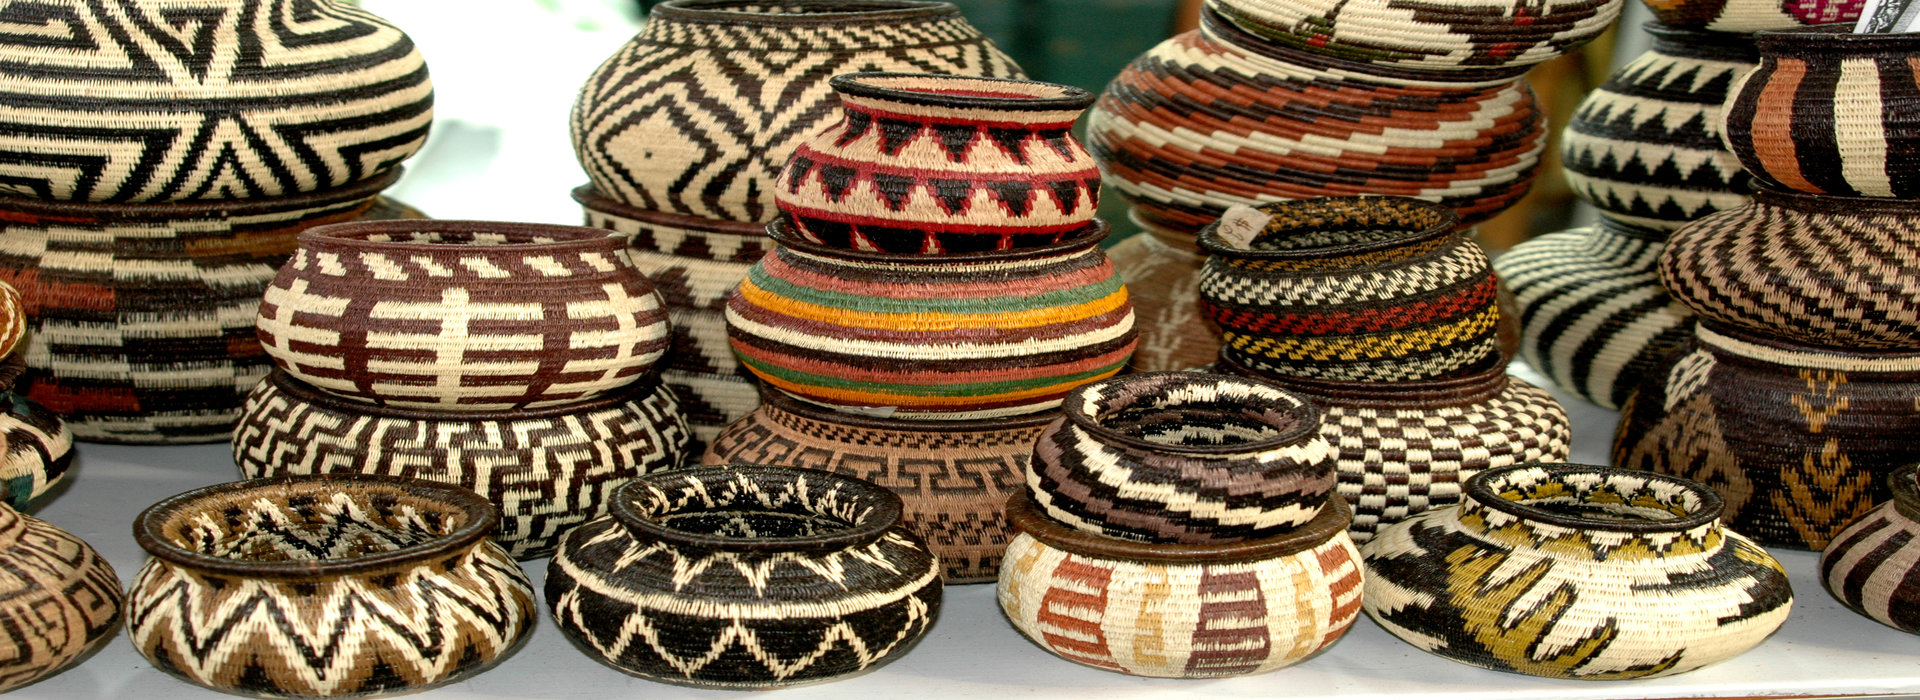 panama_embera_indian_woven_baskets